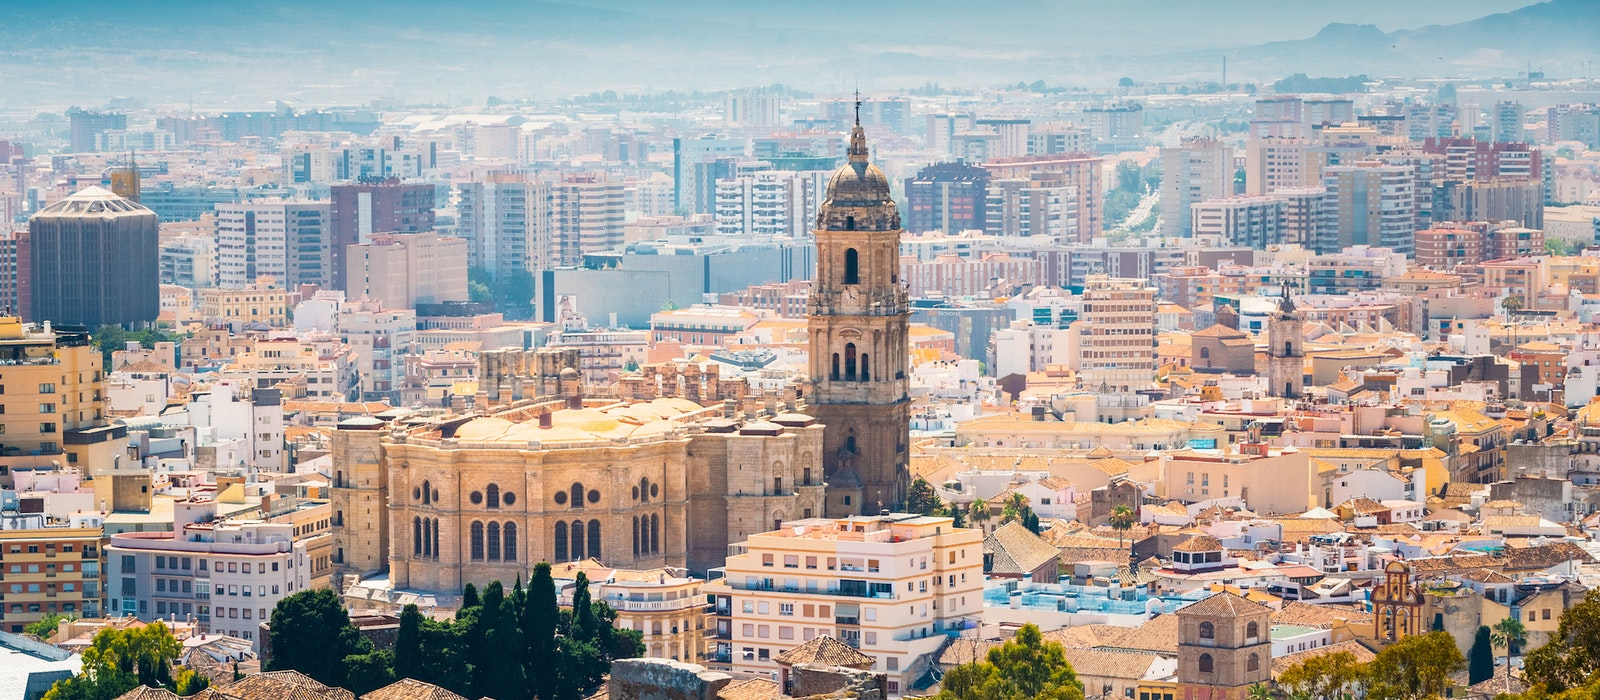 Malaga is located on southern Spain's Costa del Sol. The Andalucian city isknown for its architectural sites,stunningbeaches, and excellent cuisine.